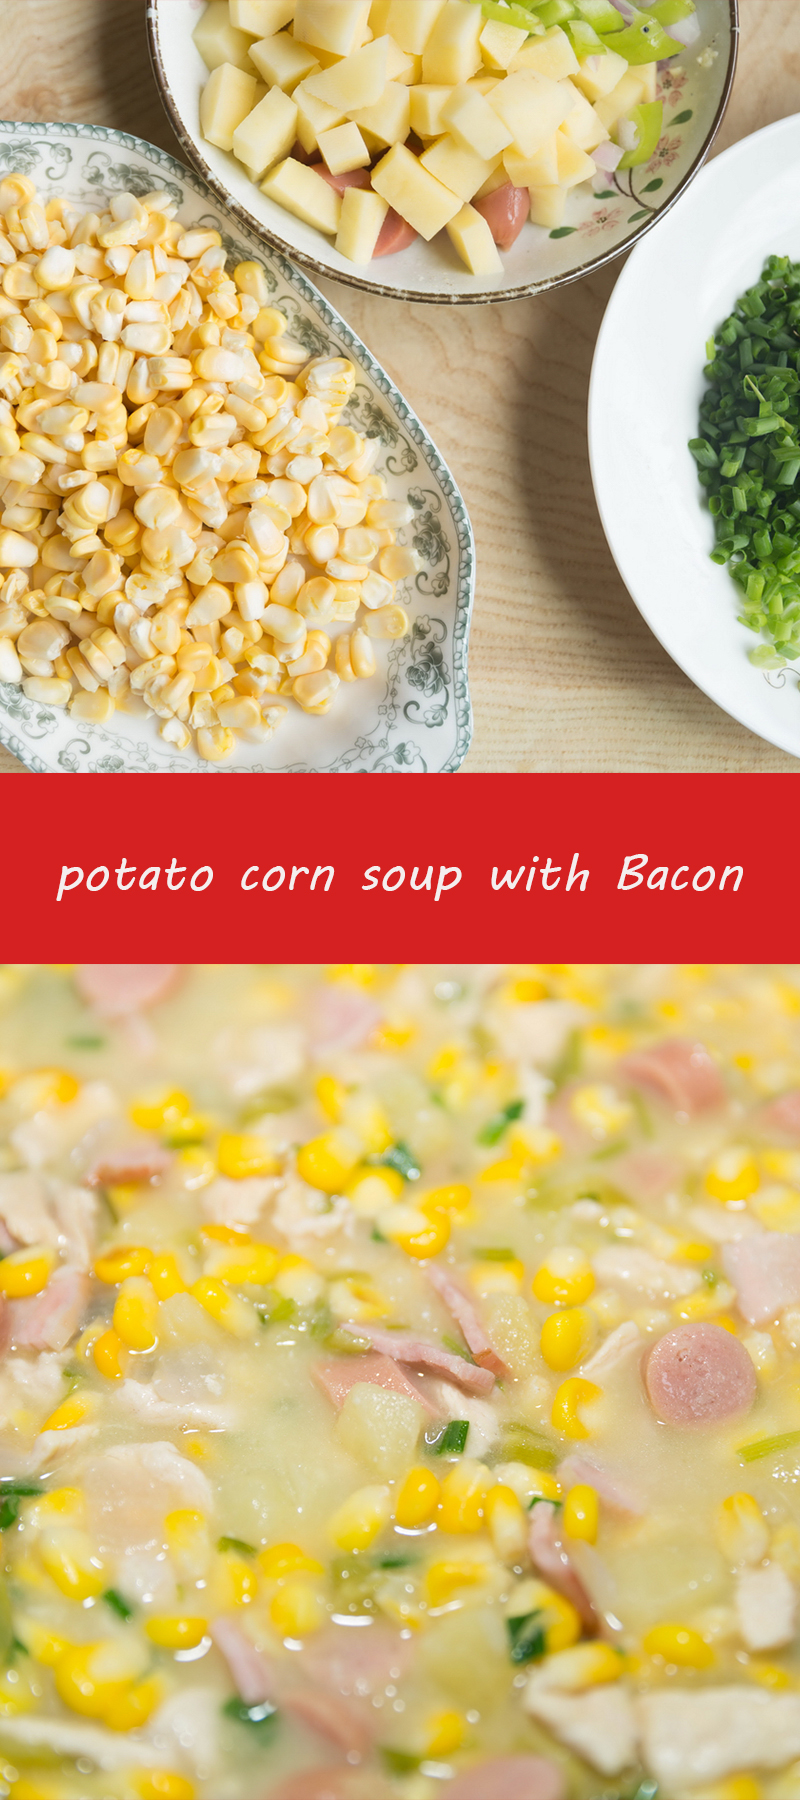 potato corn soup with Bacon